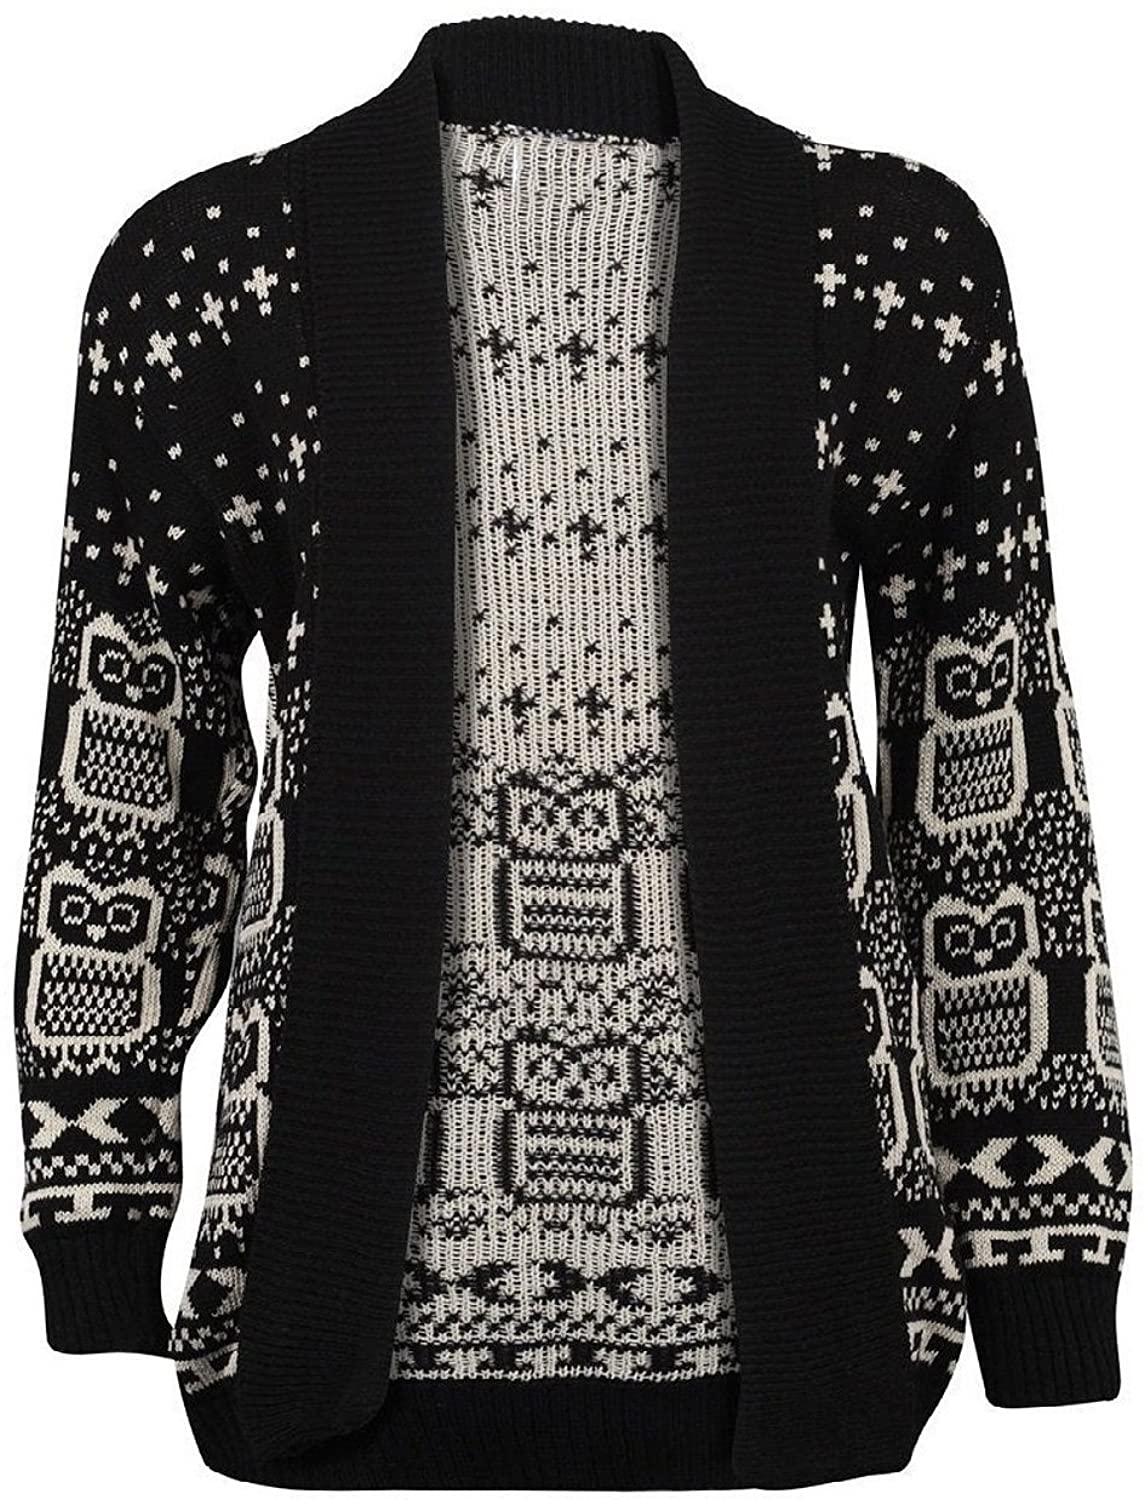 NEW WOMEN OWL PRINT LONG SLEEVE KNITTED CARDIGANS UK SIZE 8-16 ...